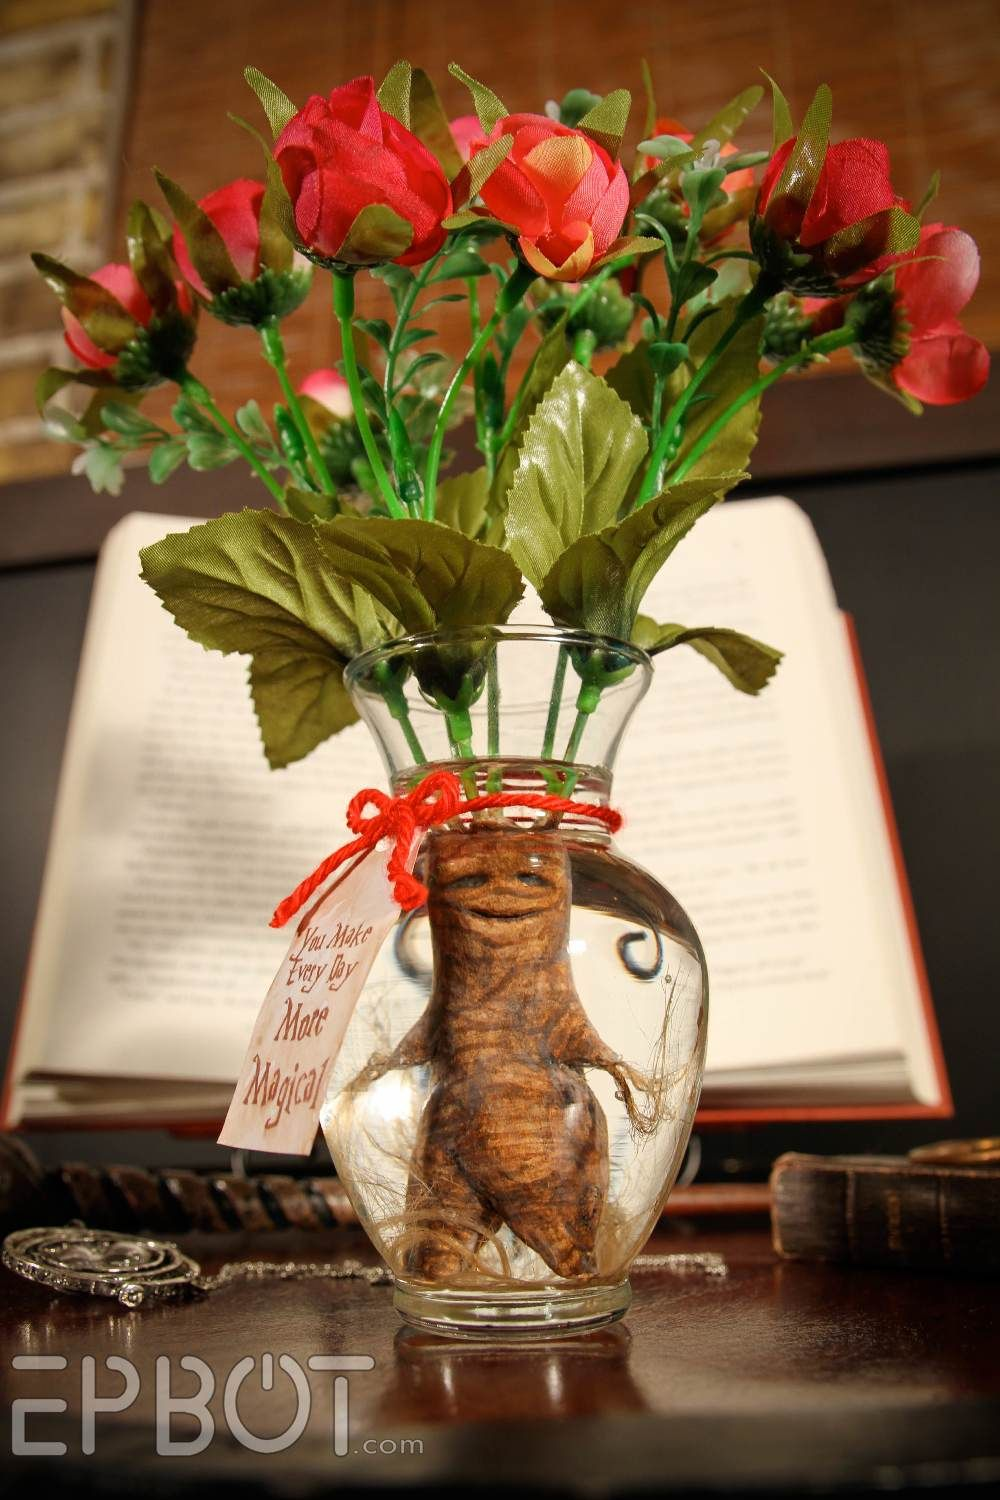 Epbot diy a harry potter inspired mandrake root